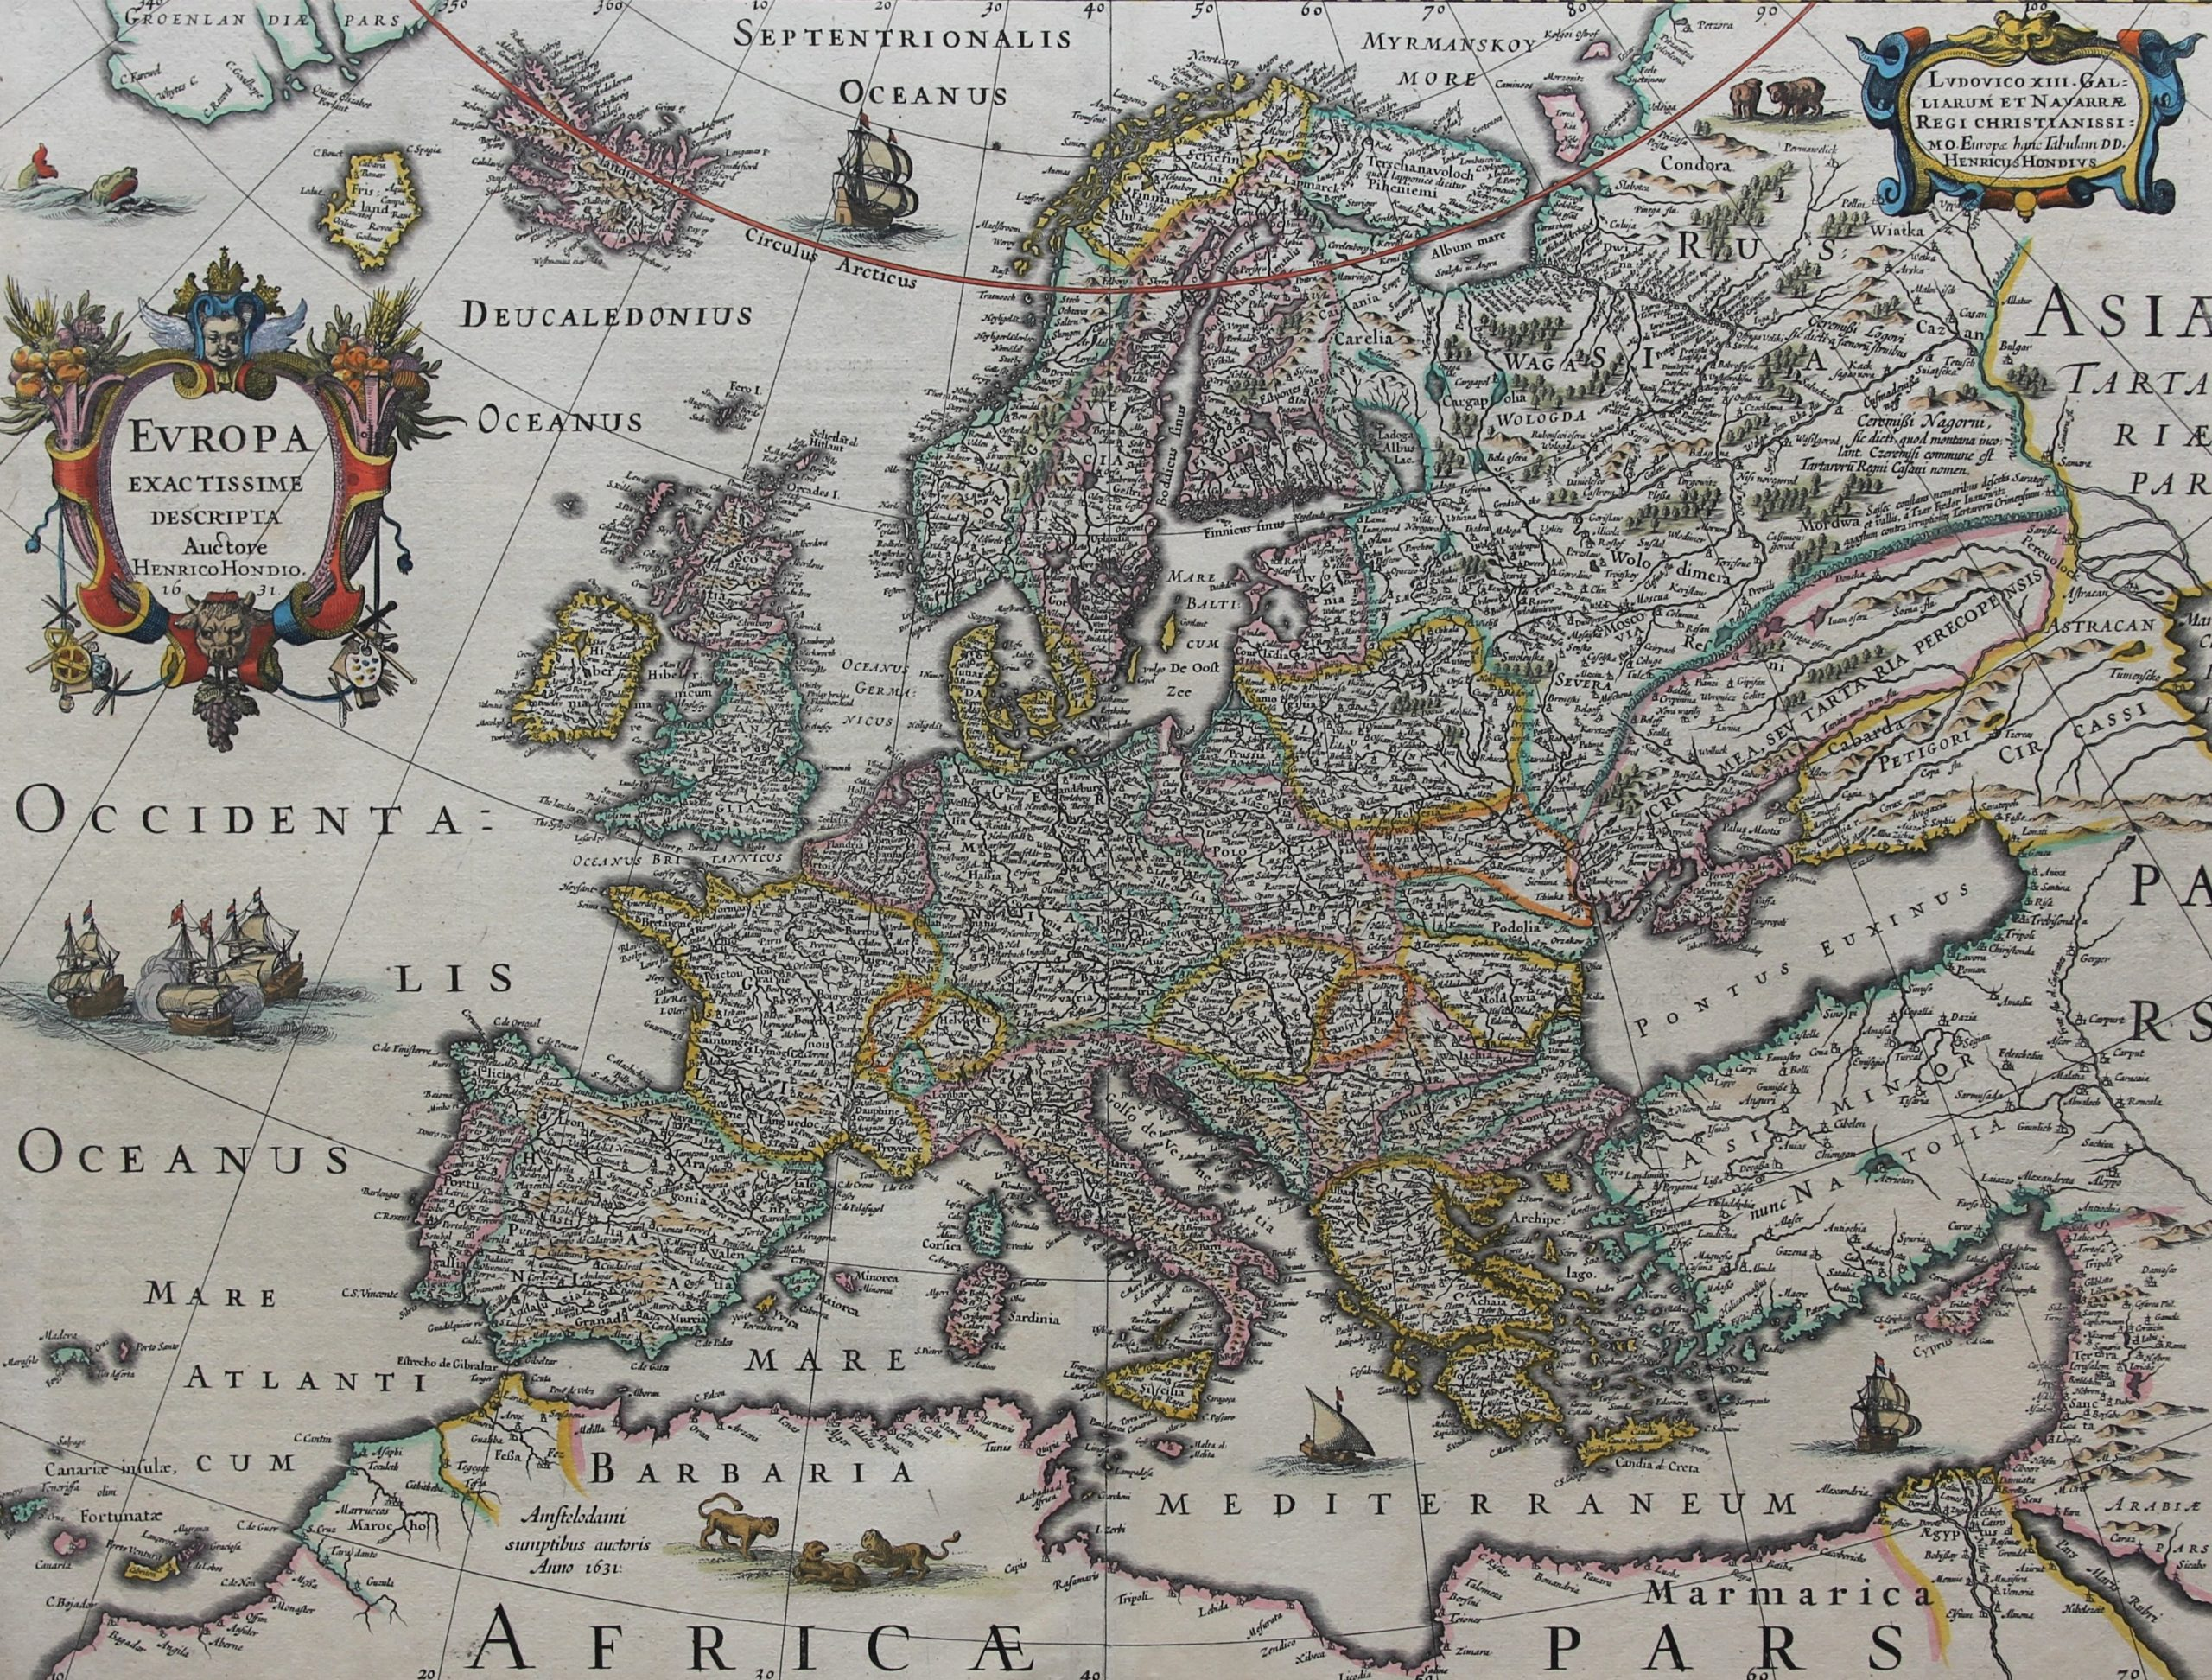 OLd and superb map of Europe (1631) by Henricus Hondiuss puslished in 1633